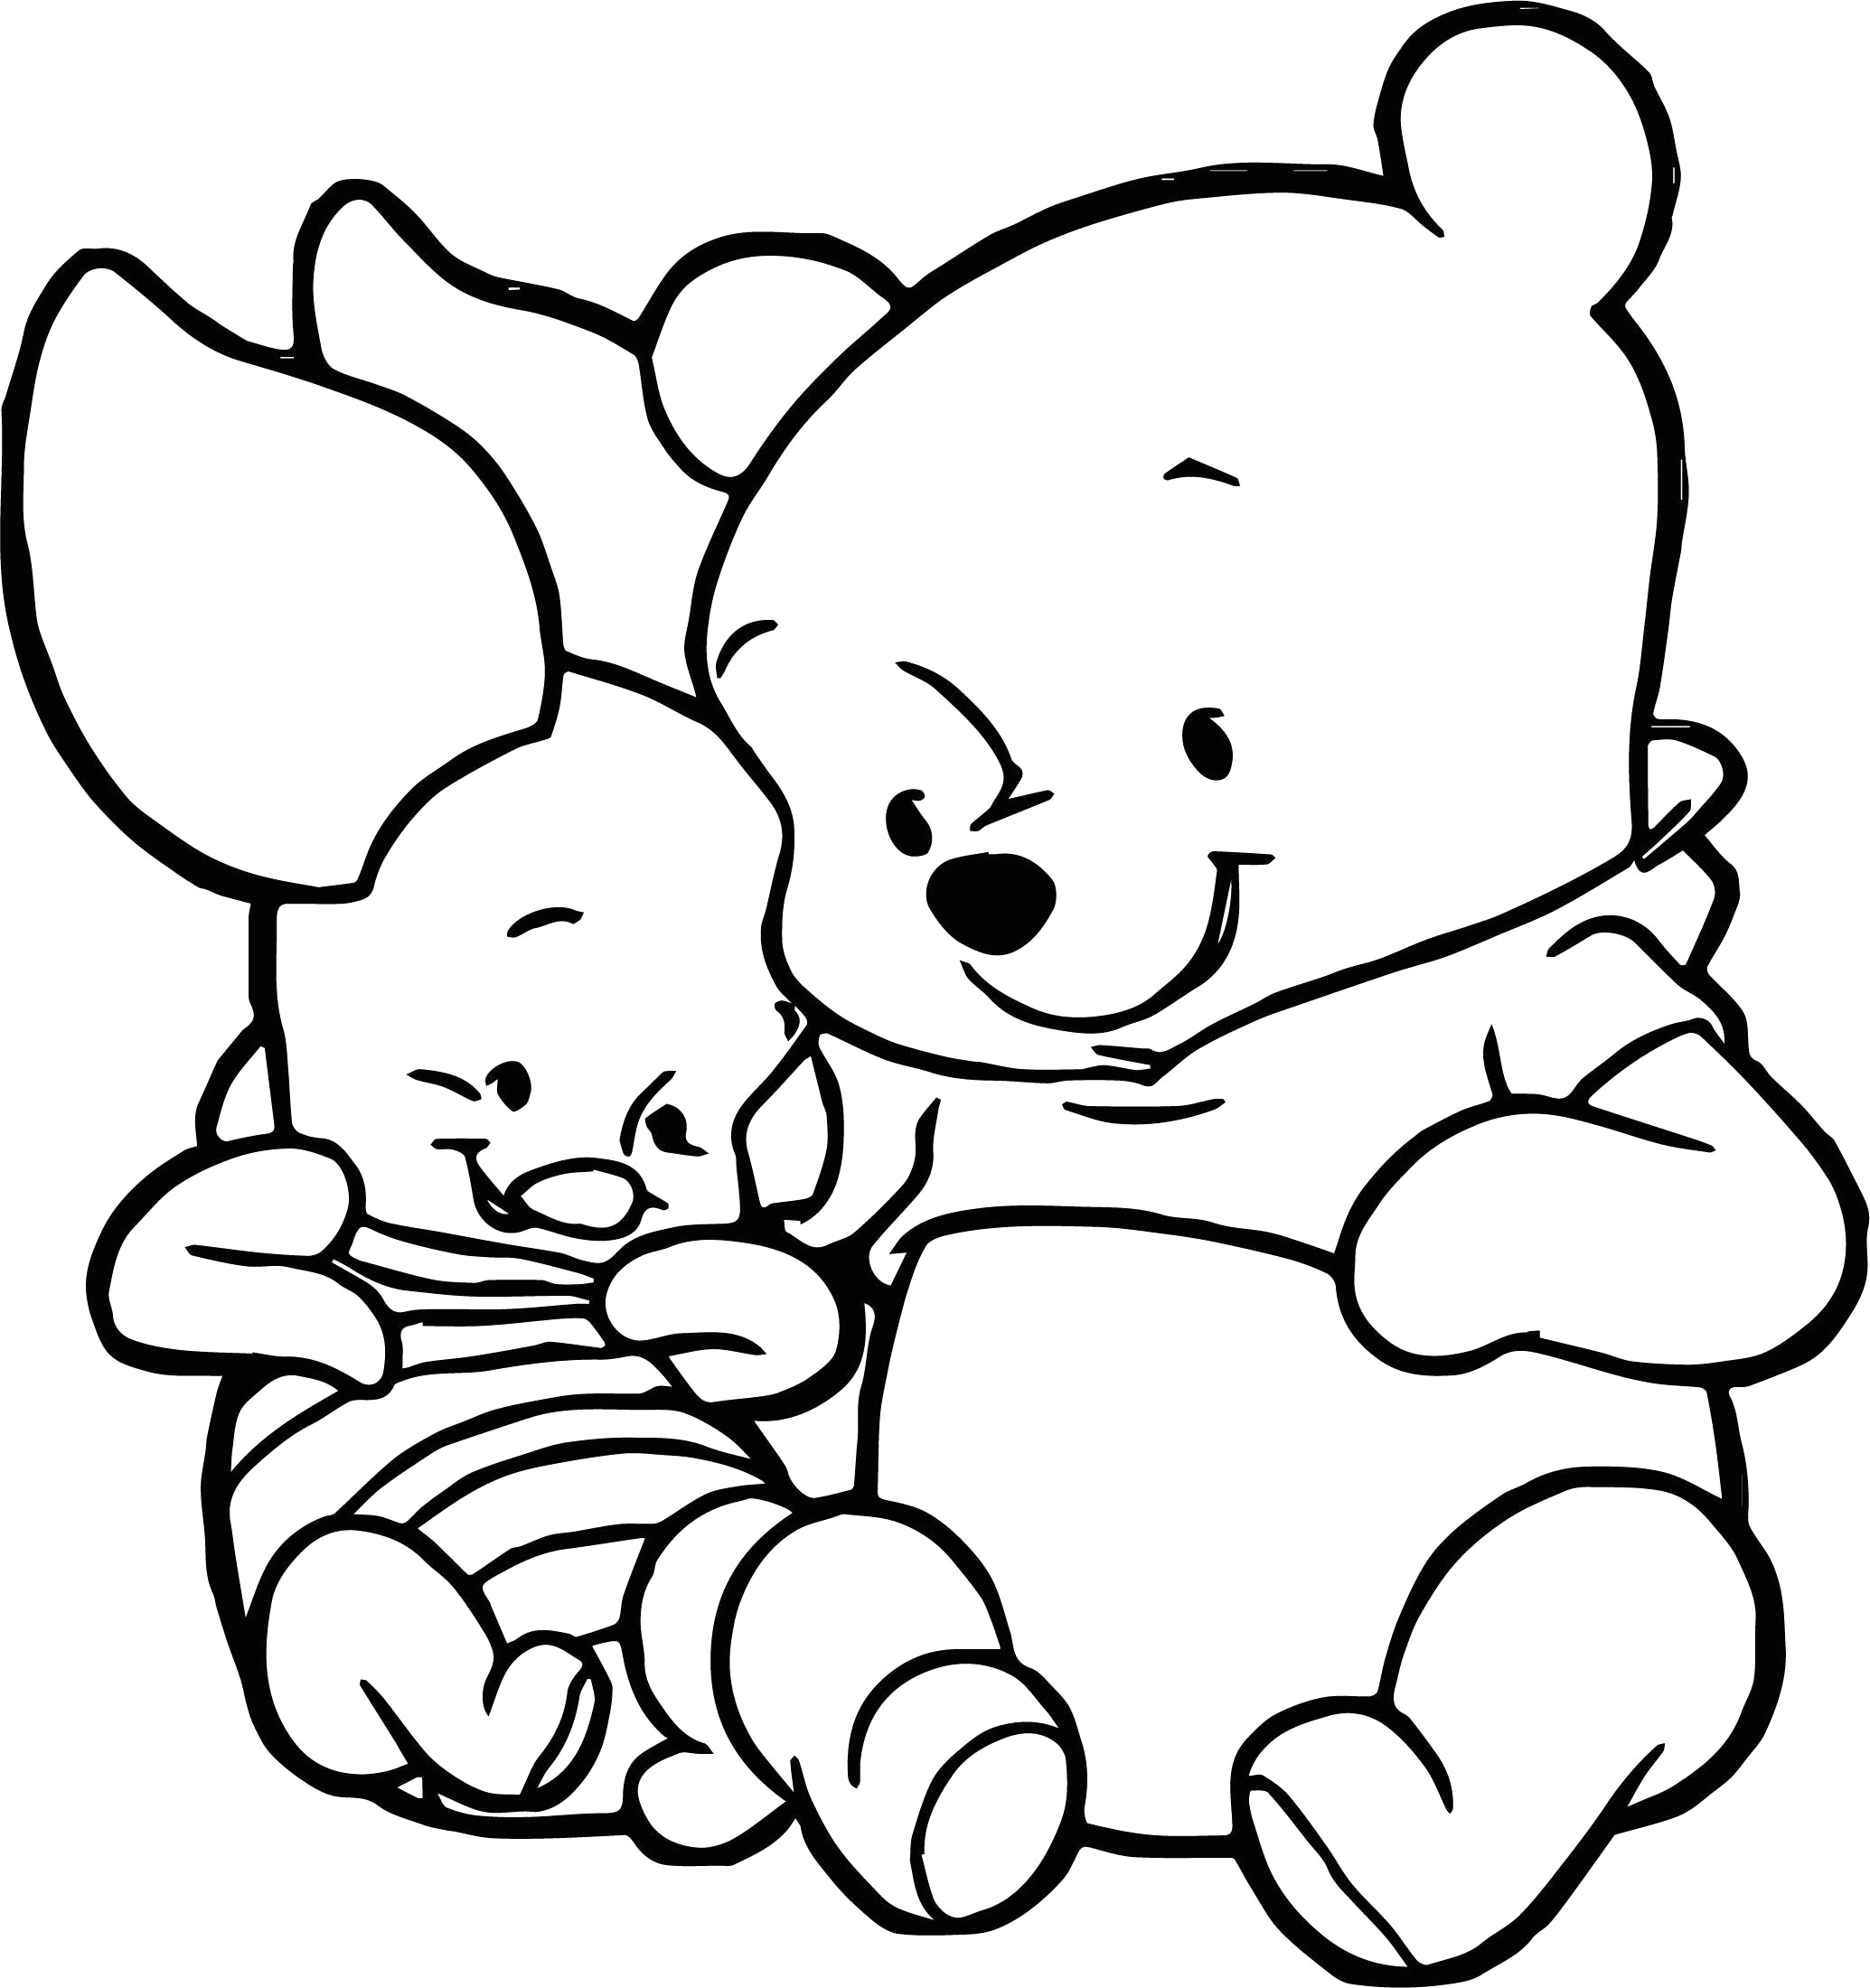 Baby Winnie the Pooh and Piglet Coloring Pages Winnie the Pooh Coloring Pages